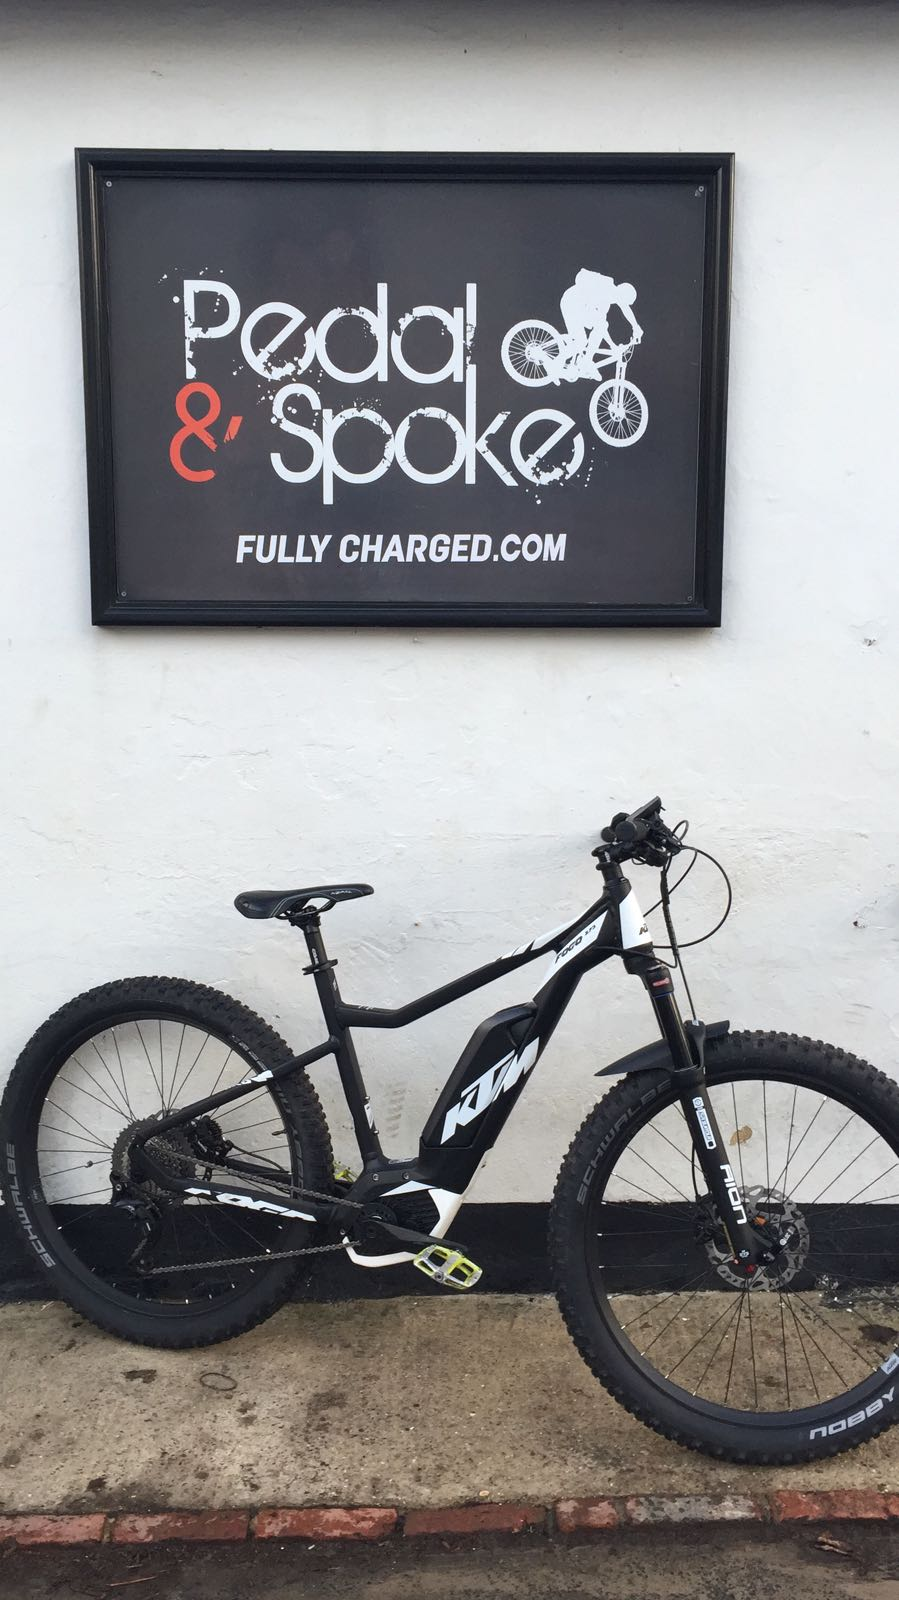 eBike Rental at Pedal and Spoke